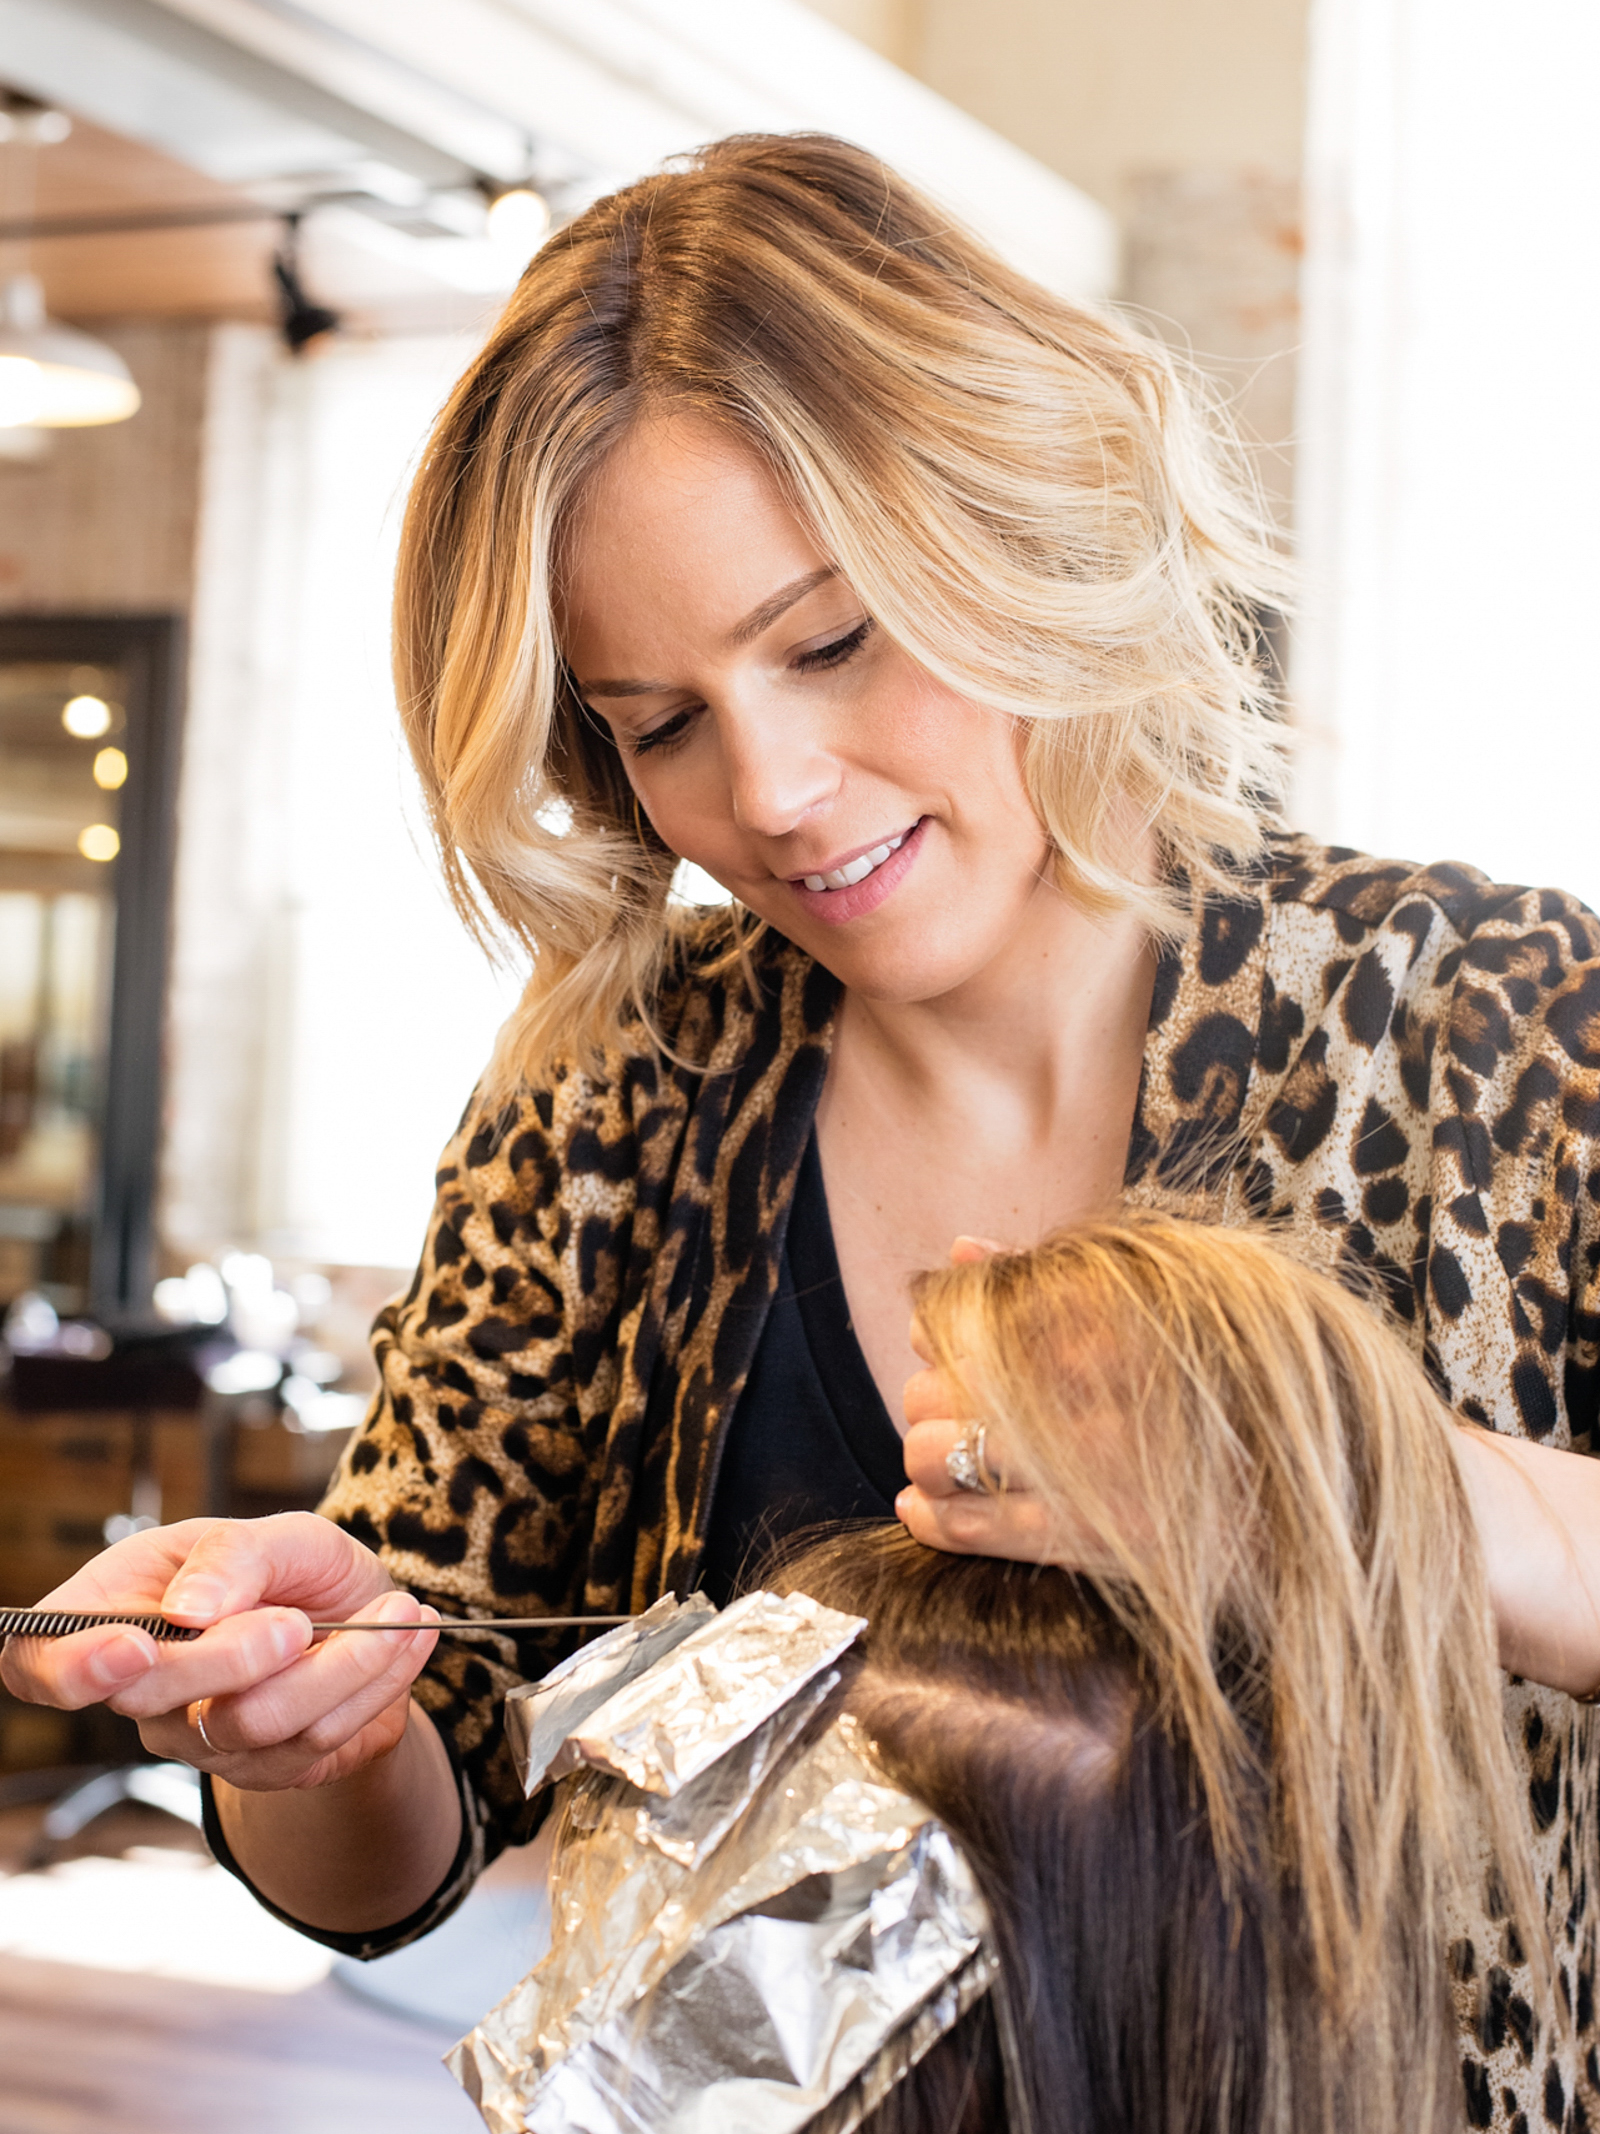 a salon hair stylist gives a woman highlights, photographed by jamie bannon photography.